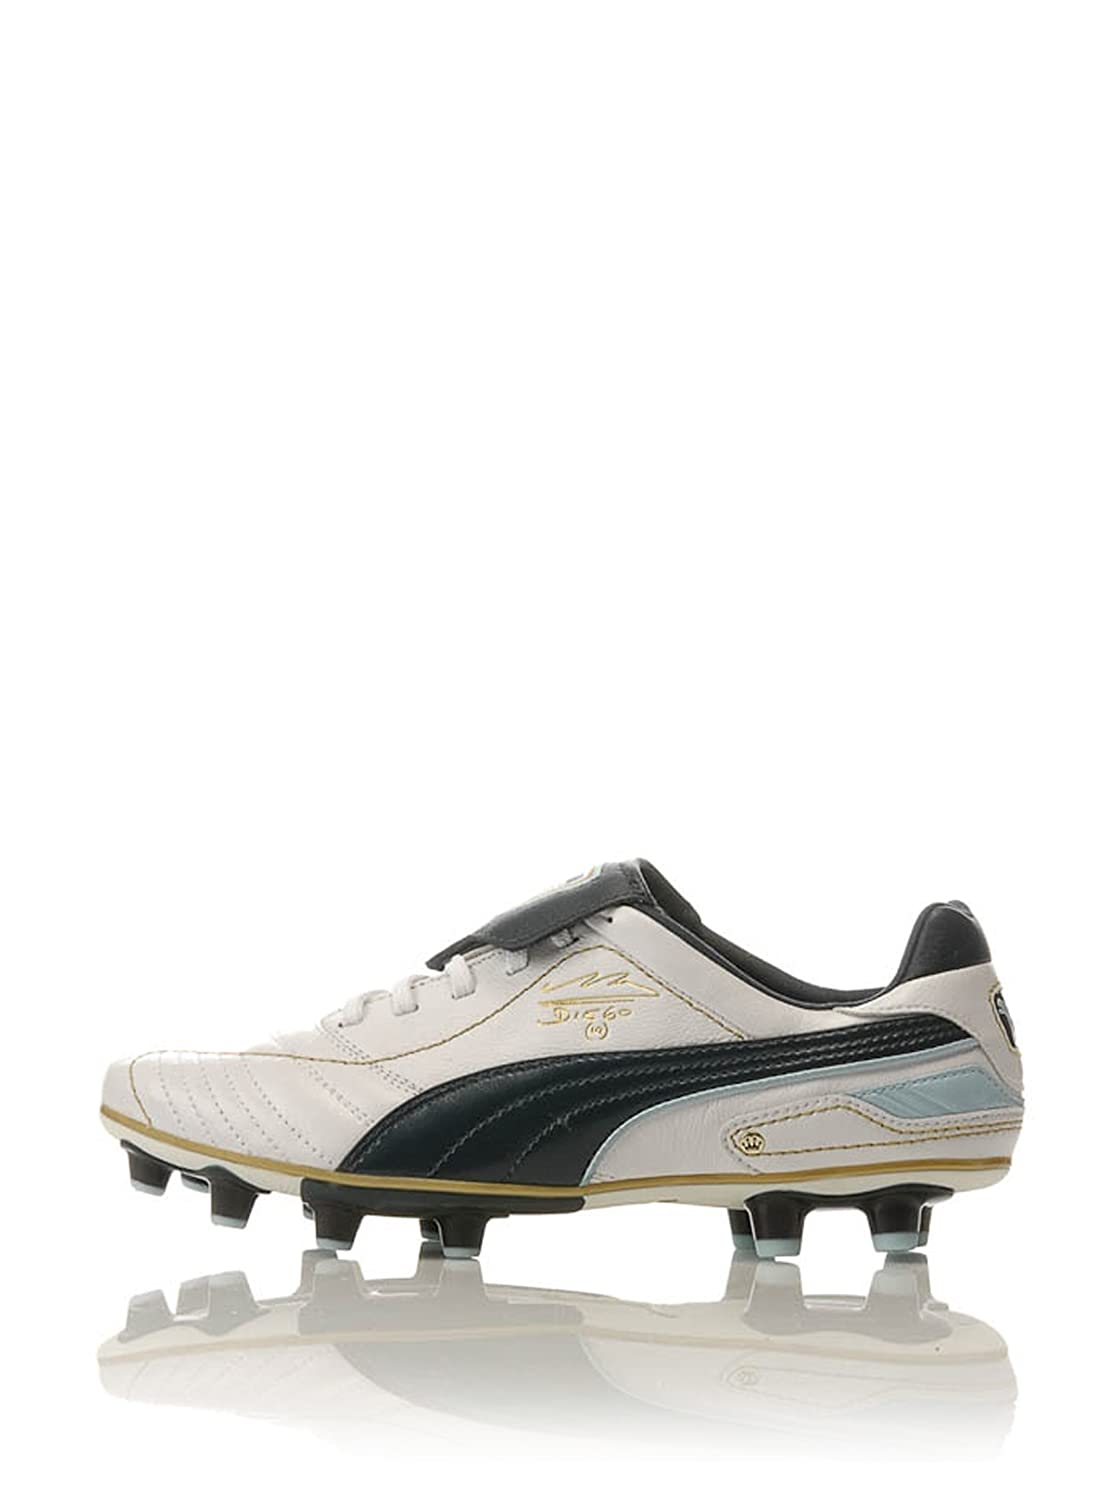 reputable site 531d2 c53c4 Puma King Diego Finale I Firm Ground Football Boots - White Midnight  Navy Crystal Blue Team Gold - UK Size 8  Amazon.co.uk  Sports   Outdoors